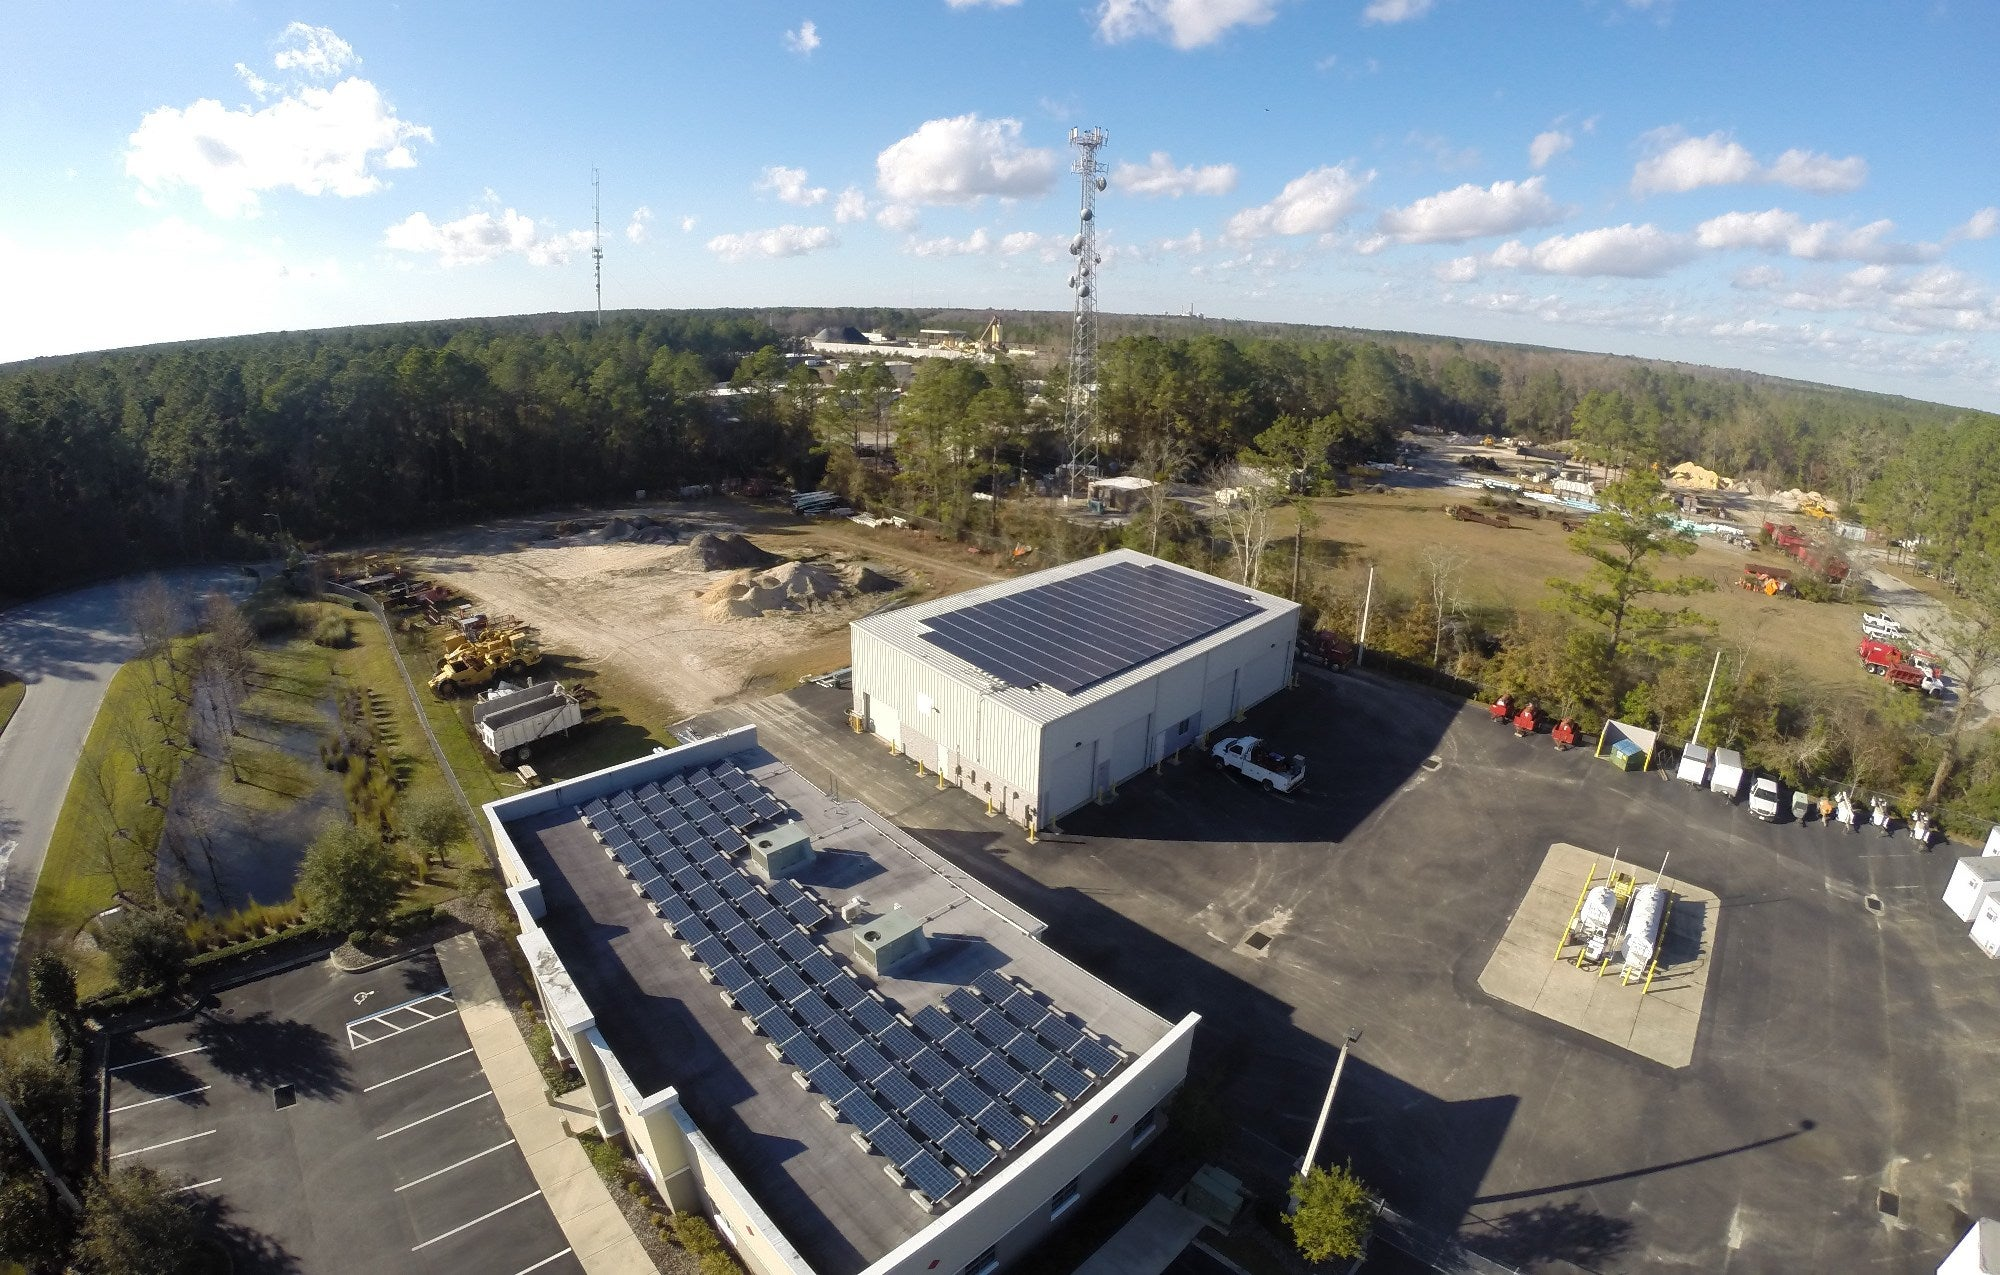 74 kW Ballasted and Corrugated Roof Mounted PV System